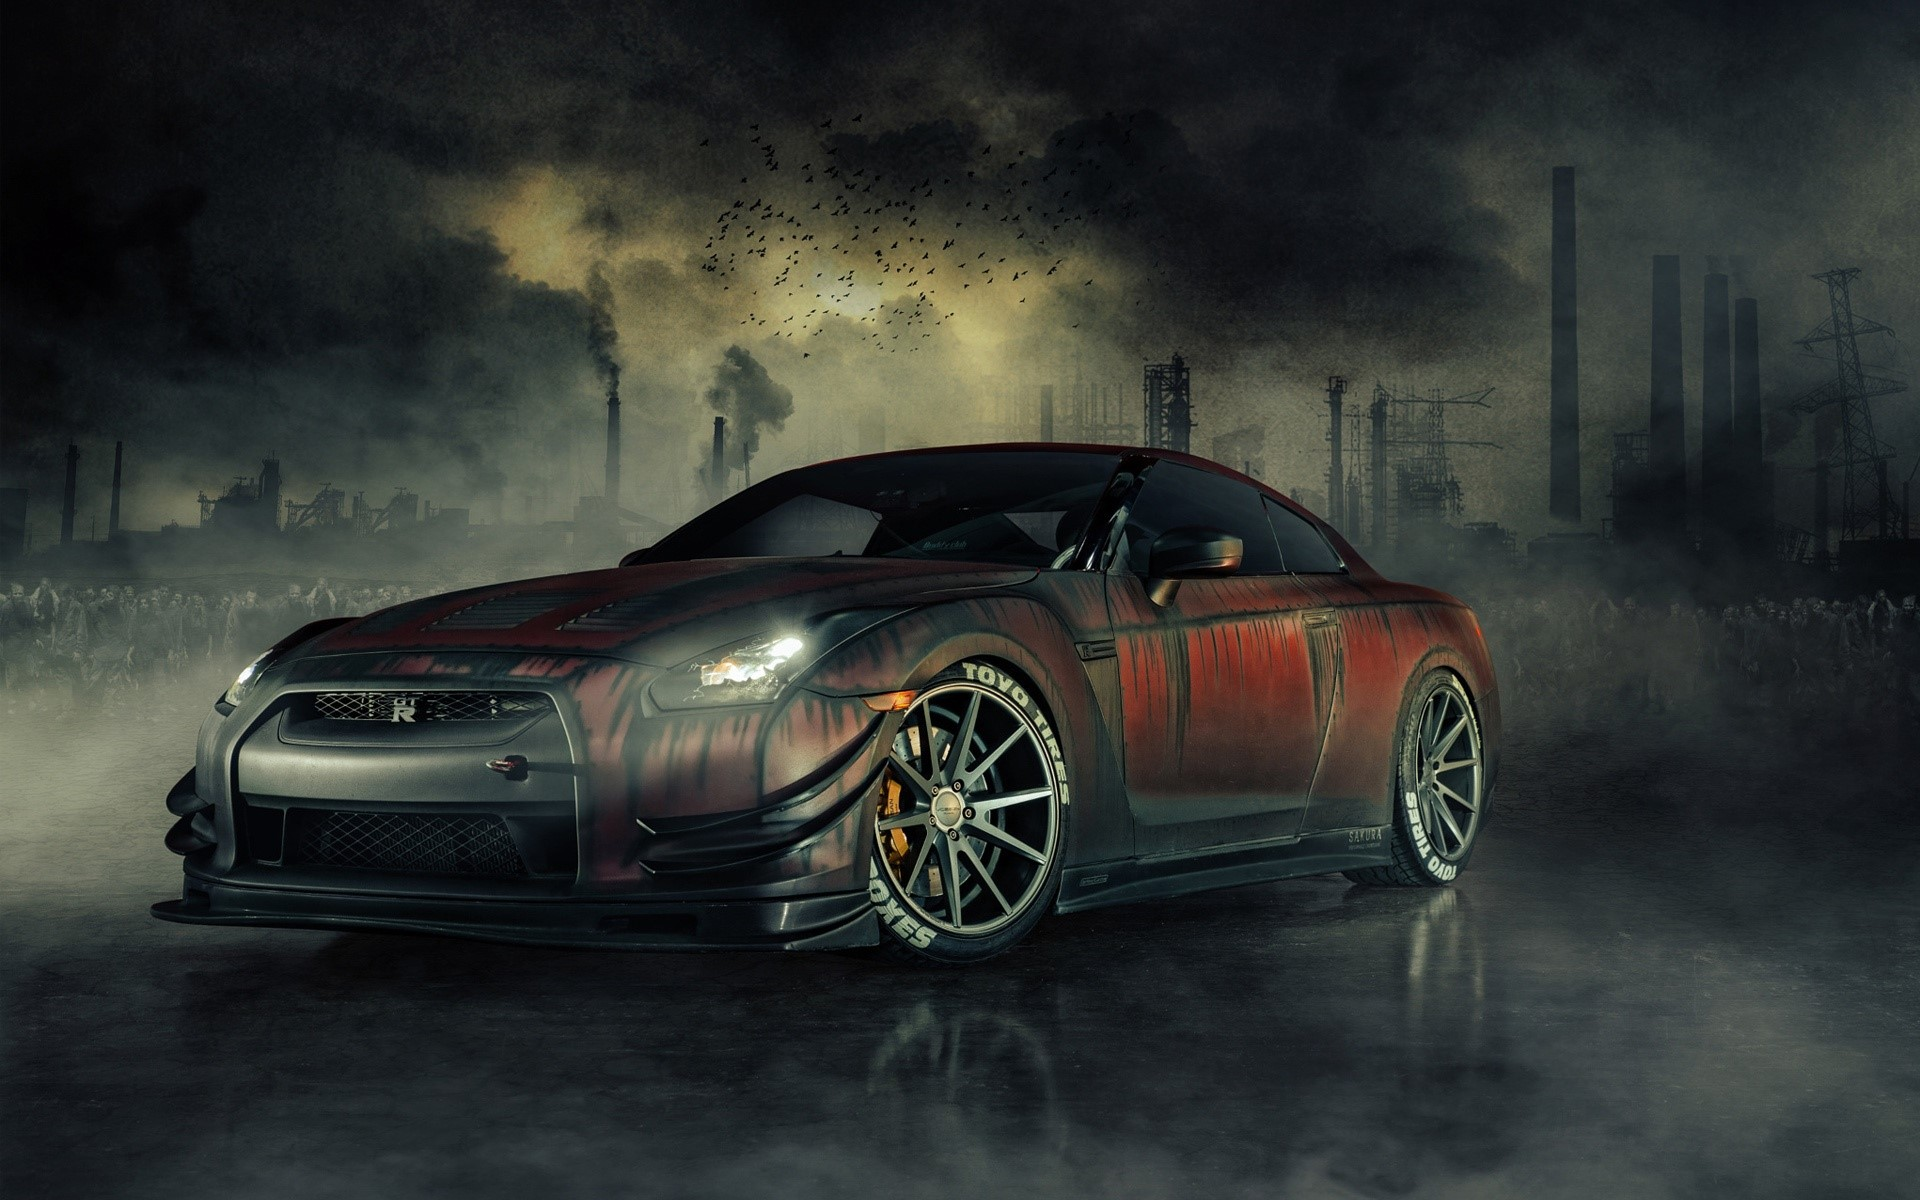 Skyline Gtr Wallpapers Posted By Sarah Tremblay